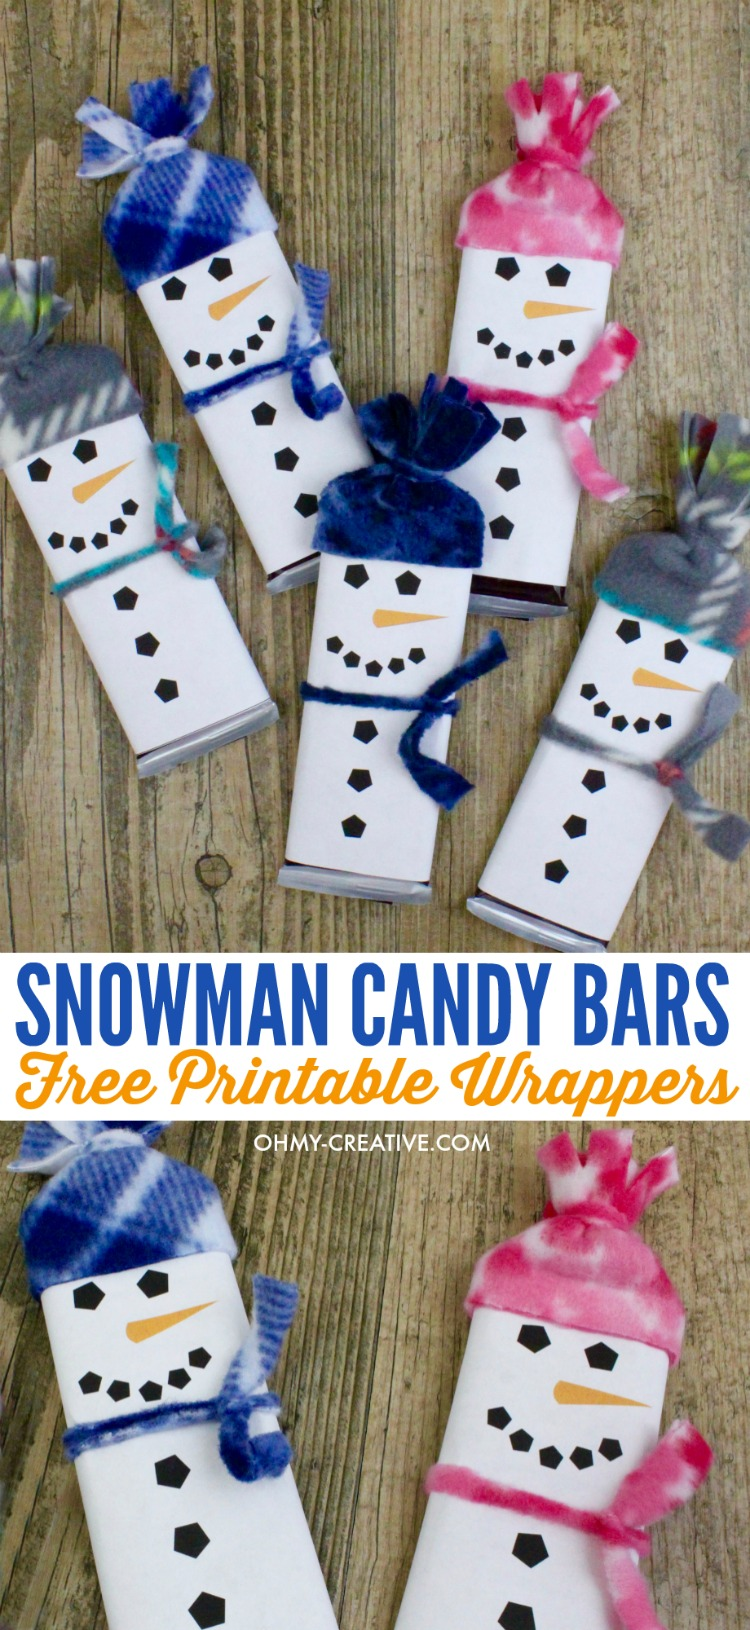 Adorable Snowman Candy Bar Treats with Snowman Free Printable candy bar wrapper template - a perfect kids treat for friends, classroom treat or stocking stuffer - a great Christmas kids craft too! OHMY-CREATIVE.COM